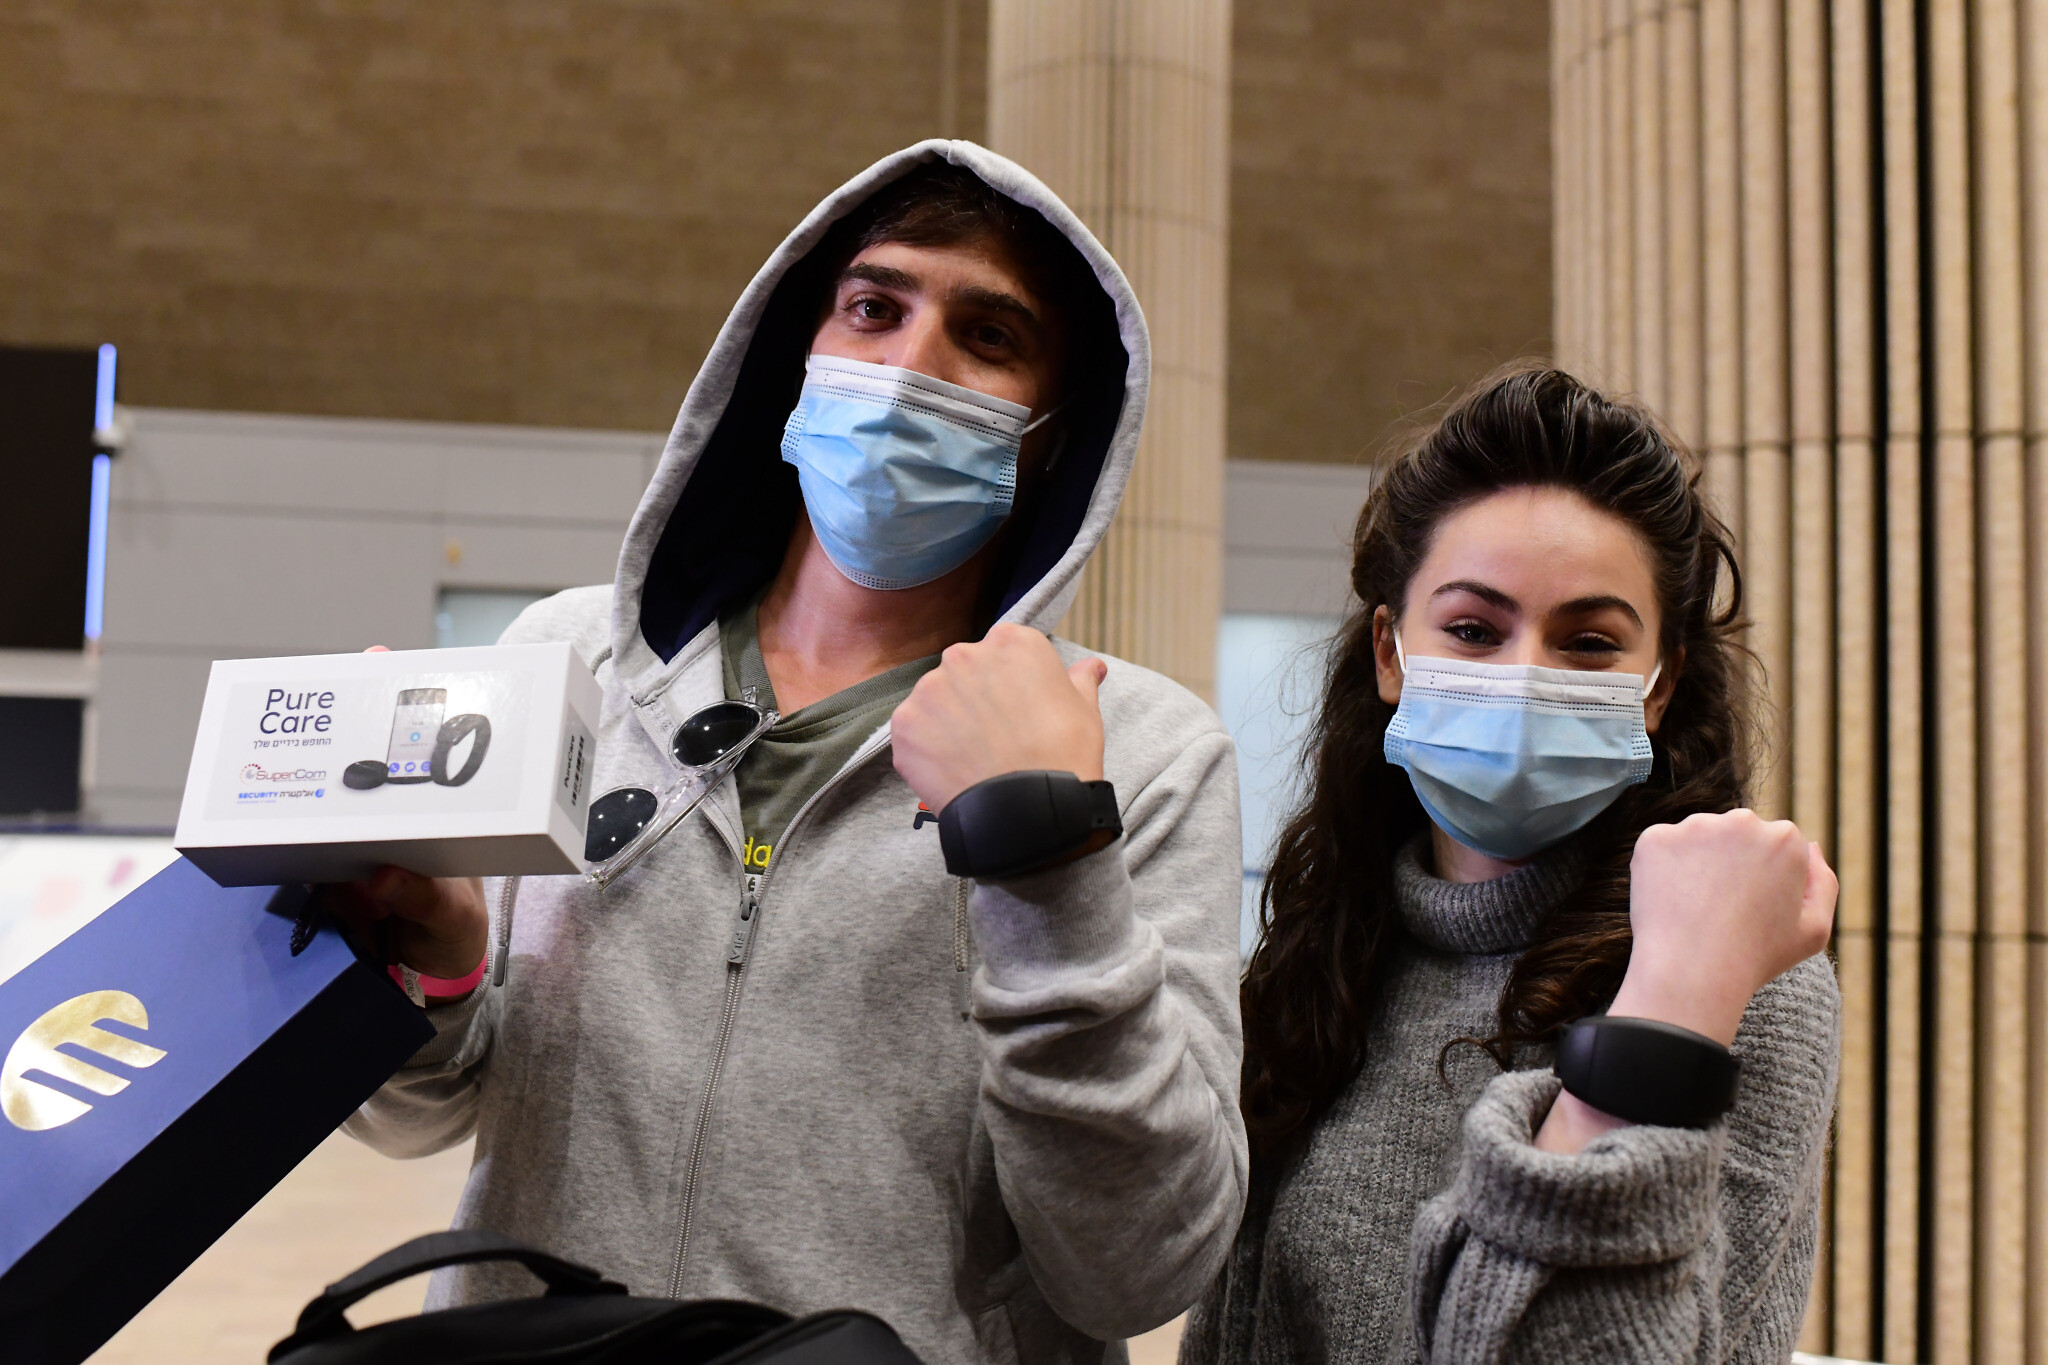 Quarantine hotels to close as ministers advance electronic bracelet bill | The Times of Israel